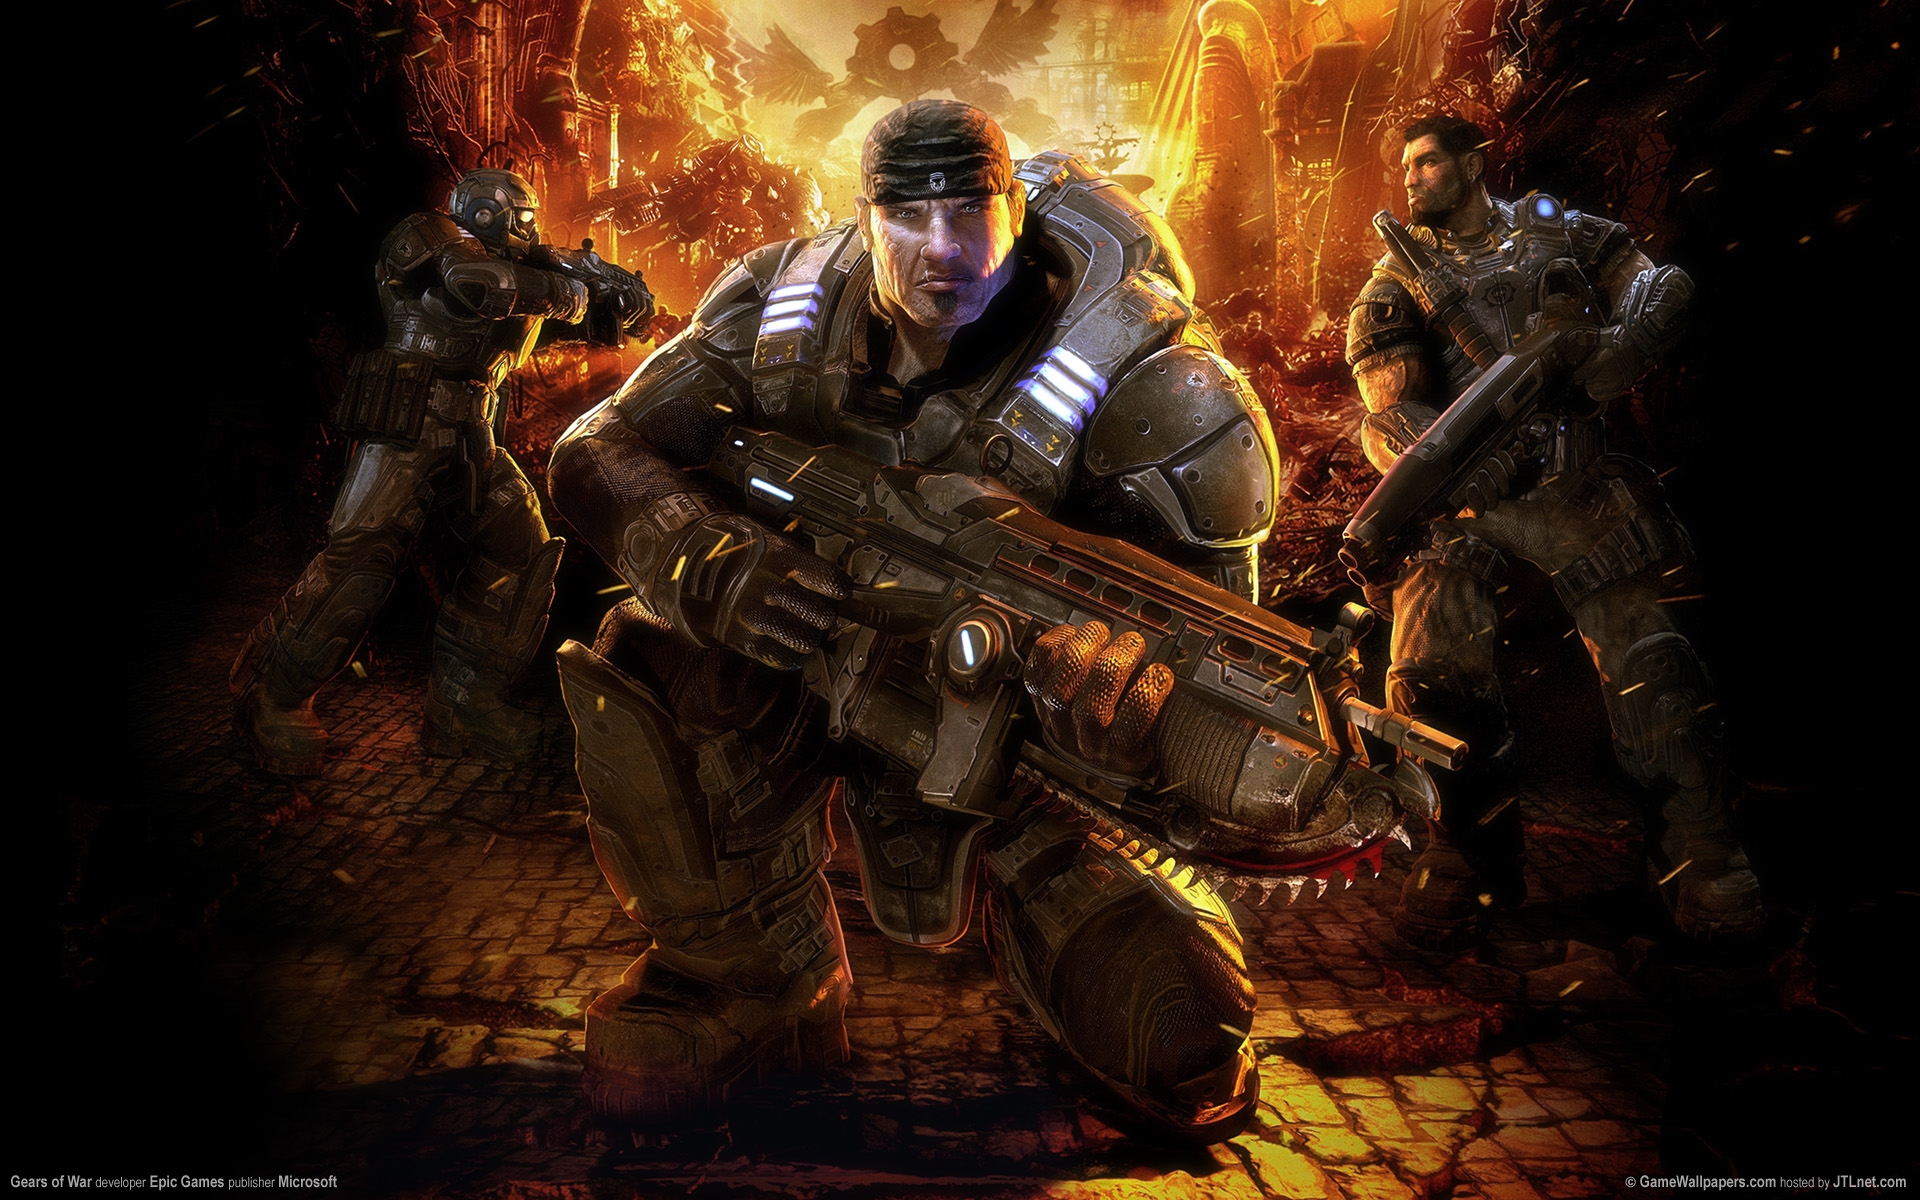 gears of war wallpaper | 1920x1200 | #67523